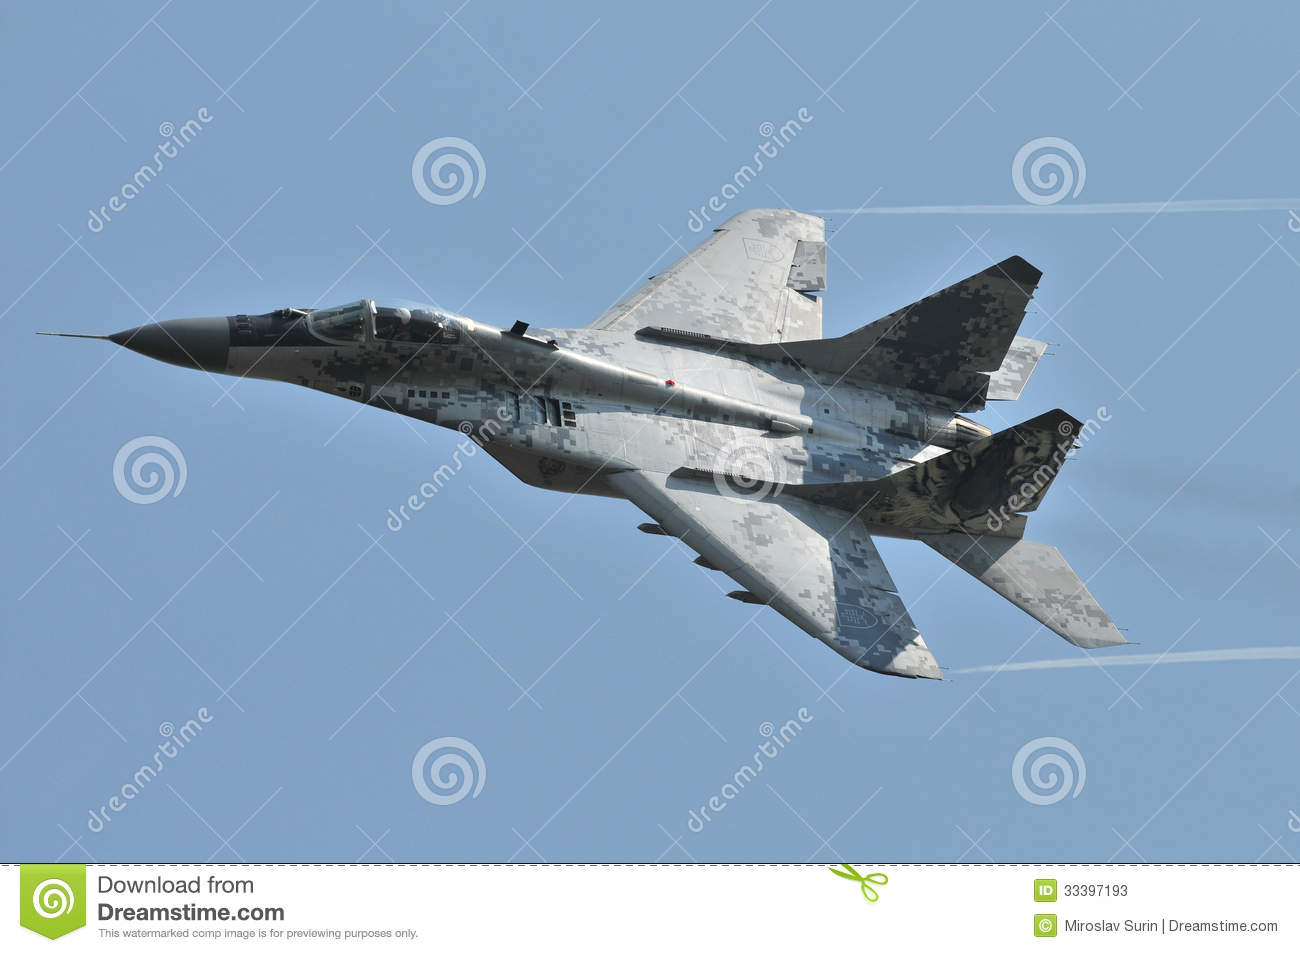 L Armée de l Air slovaque de MiG-29AS